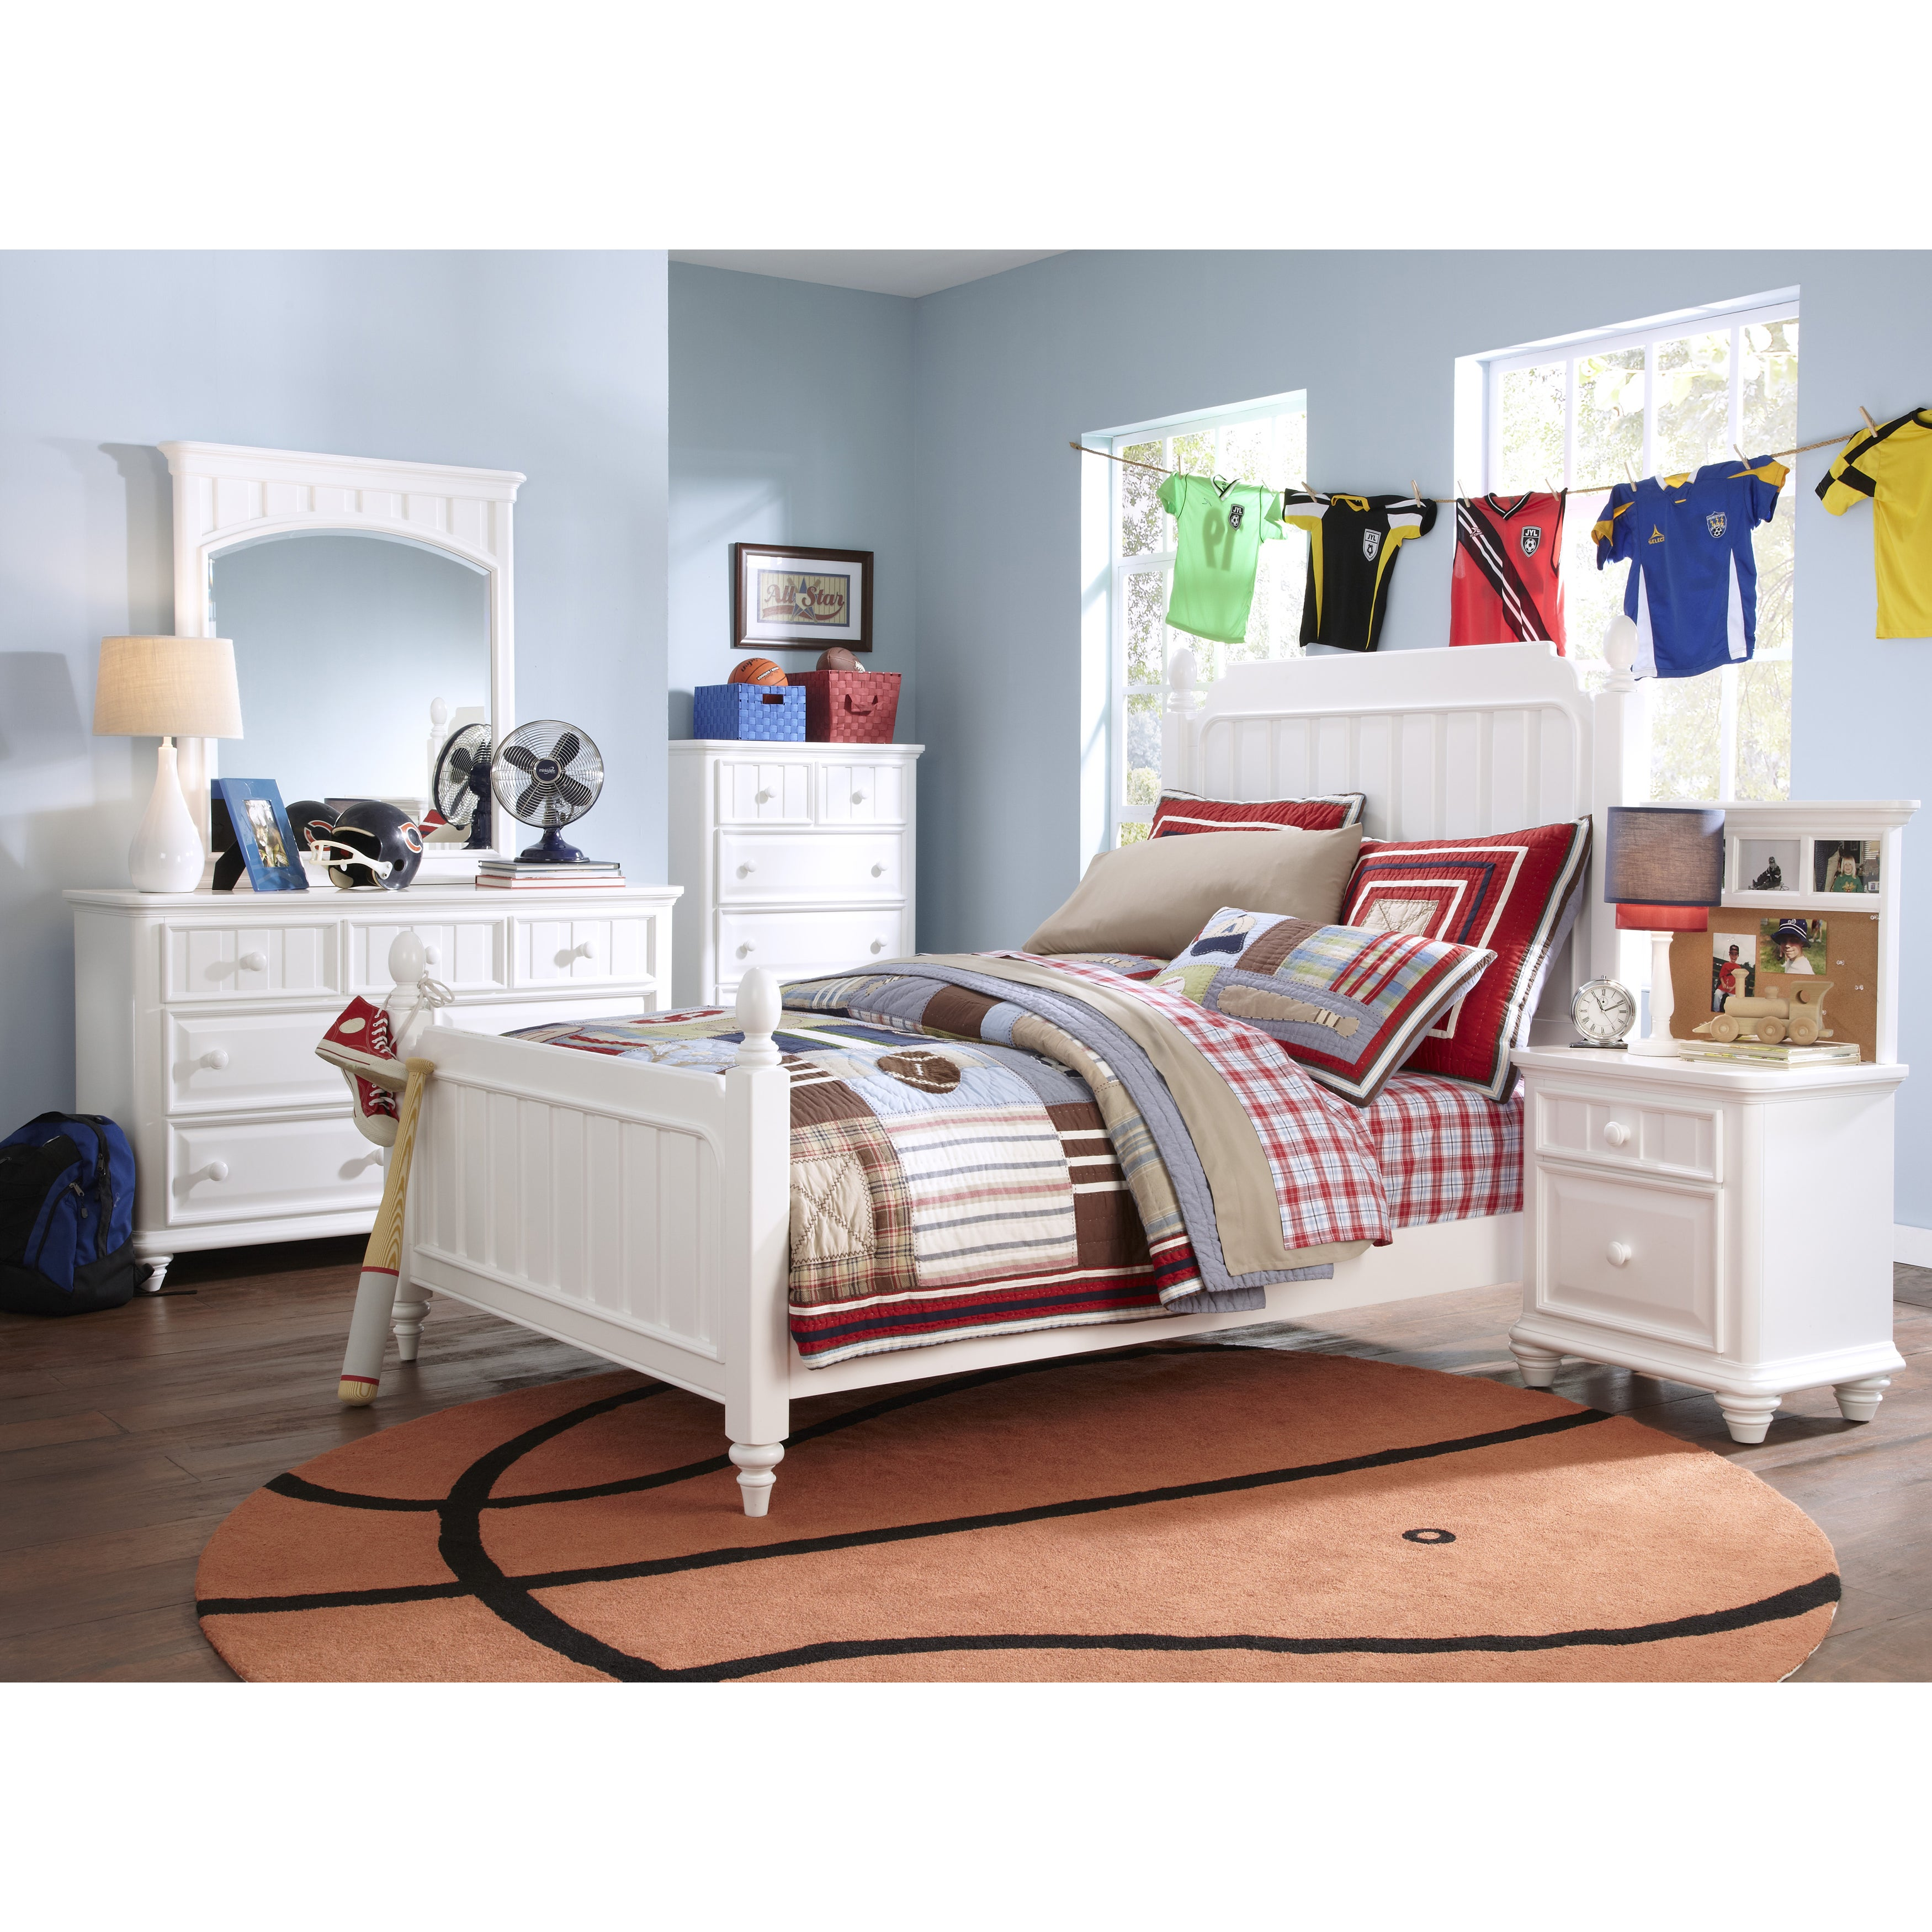 Lawrence SummerTime Youth Twin Size Poster Bed (Color: Wh...